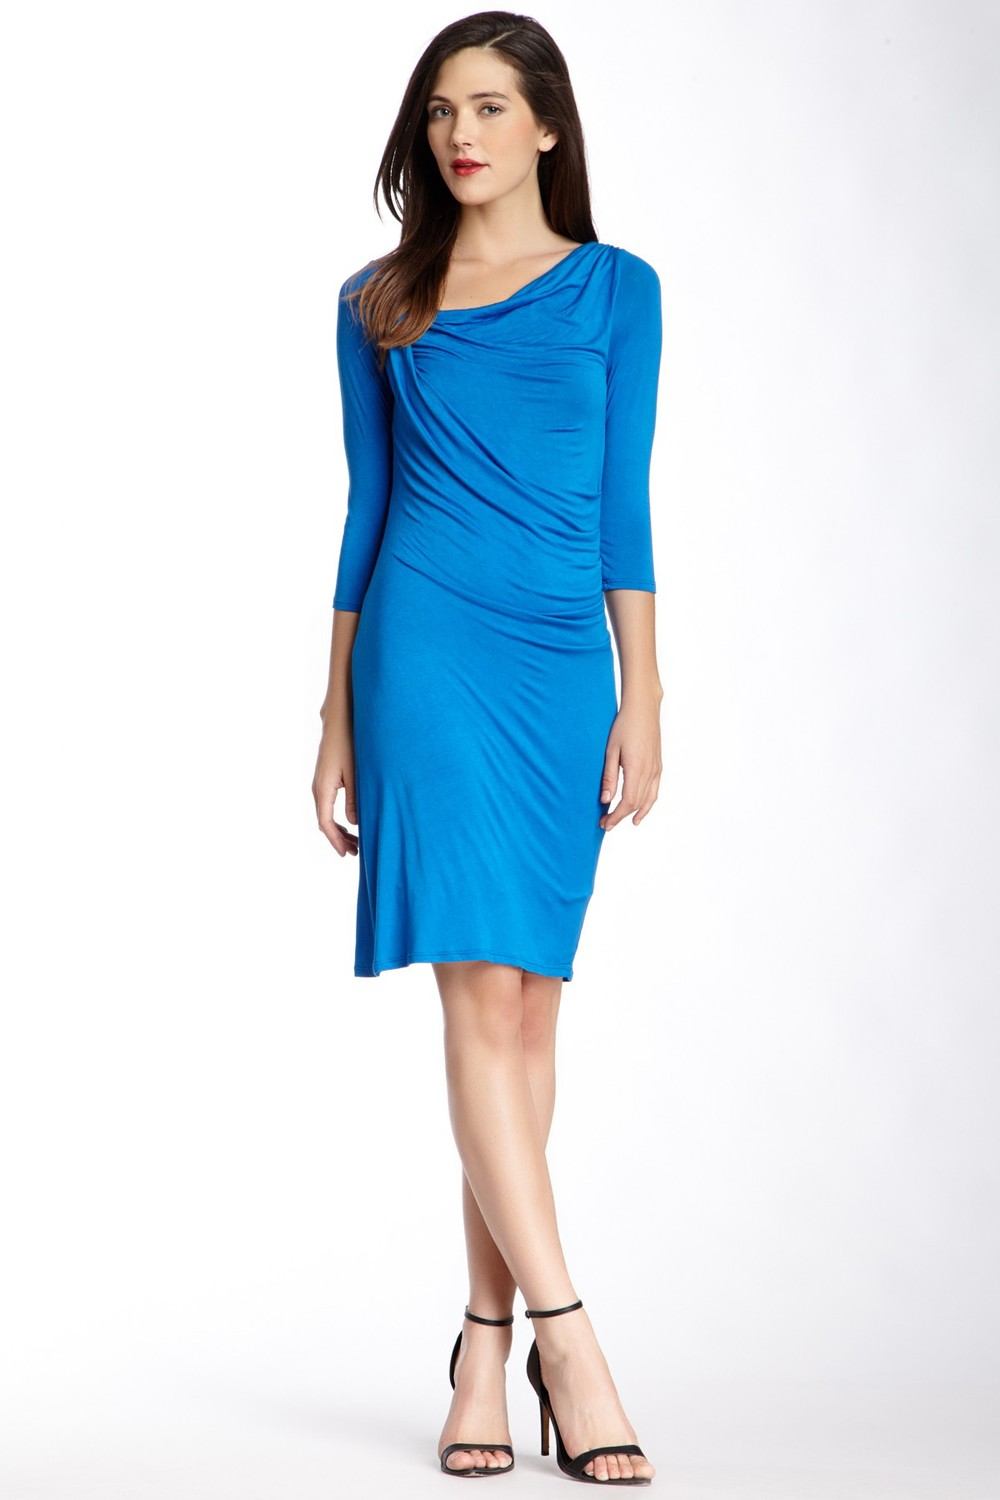 Weston Wear Renee Solid Mid-Length Sheath Dress. Nordstrom Rack. Was: $114 Now: $36.